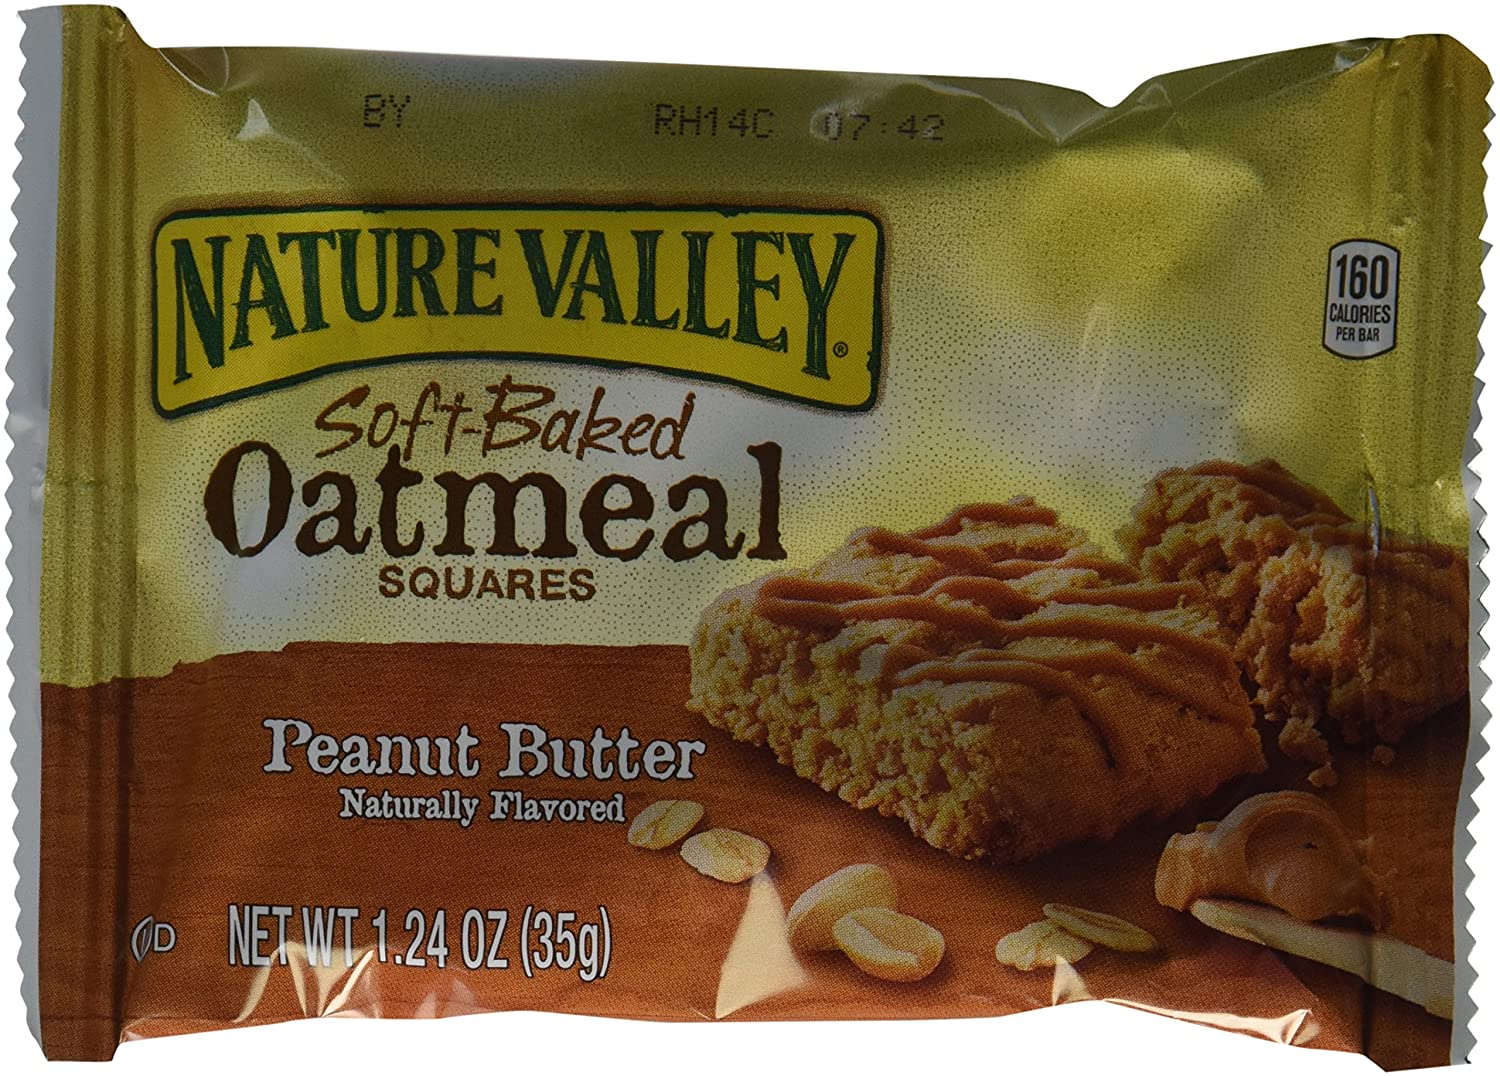 Nature Valley, Soft-Baked Oatmeal Squares, Peanut Butter, 7.44oz Box (Pack of 2)